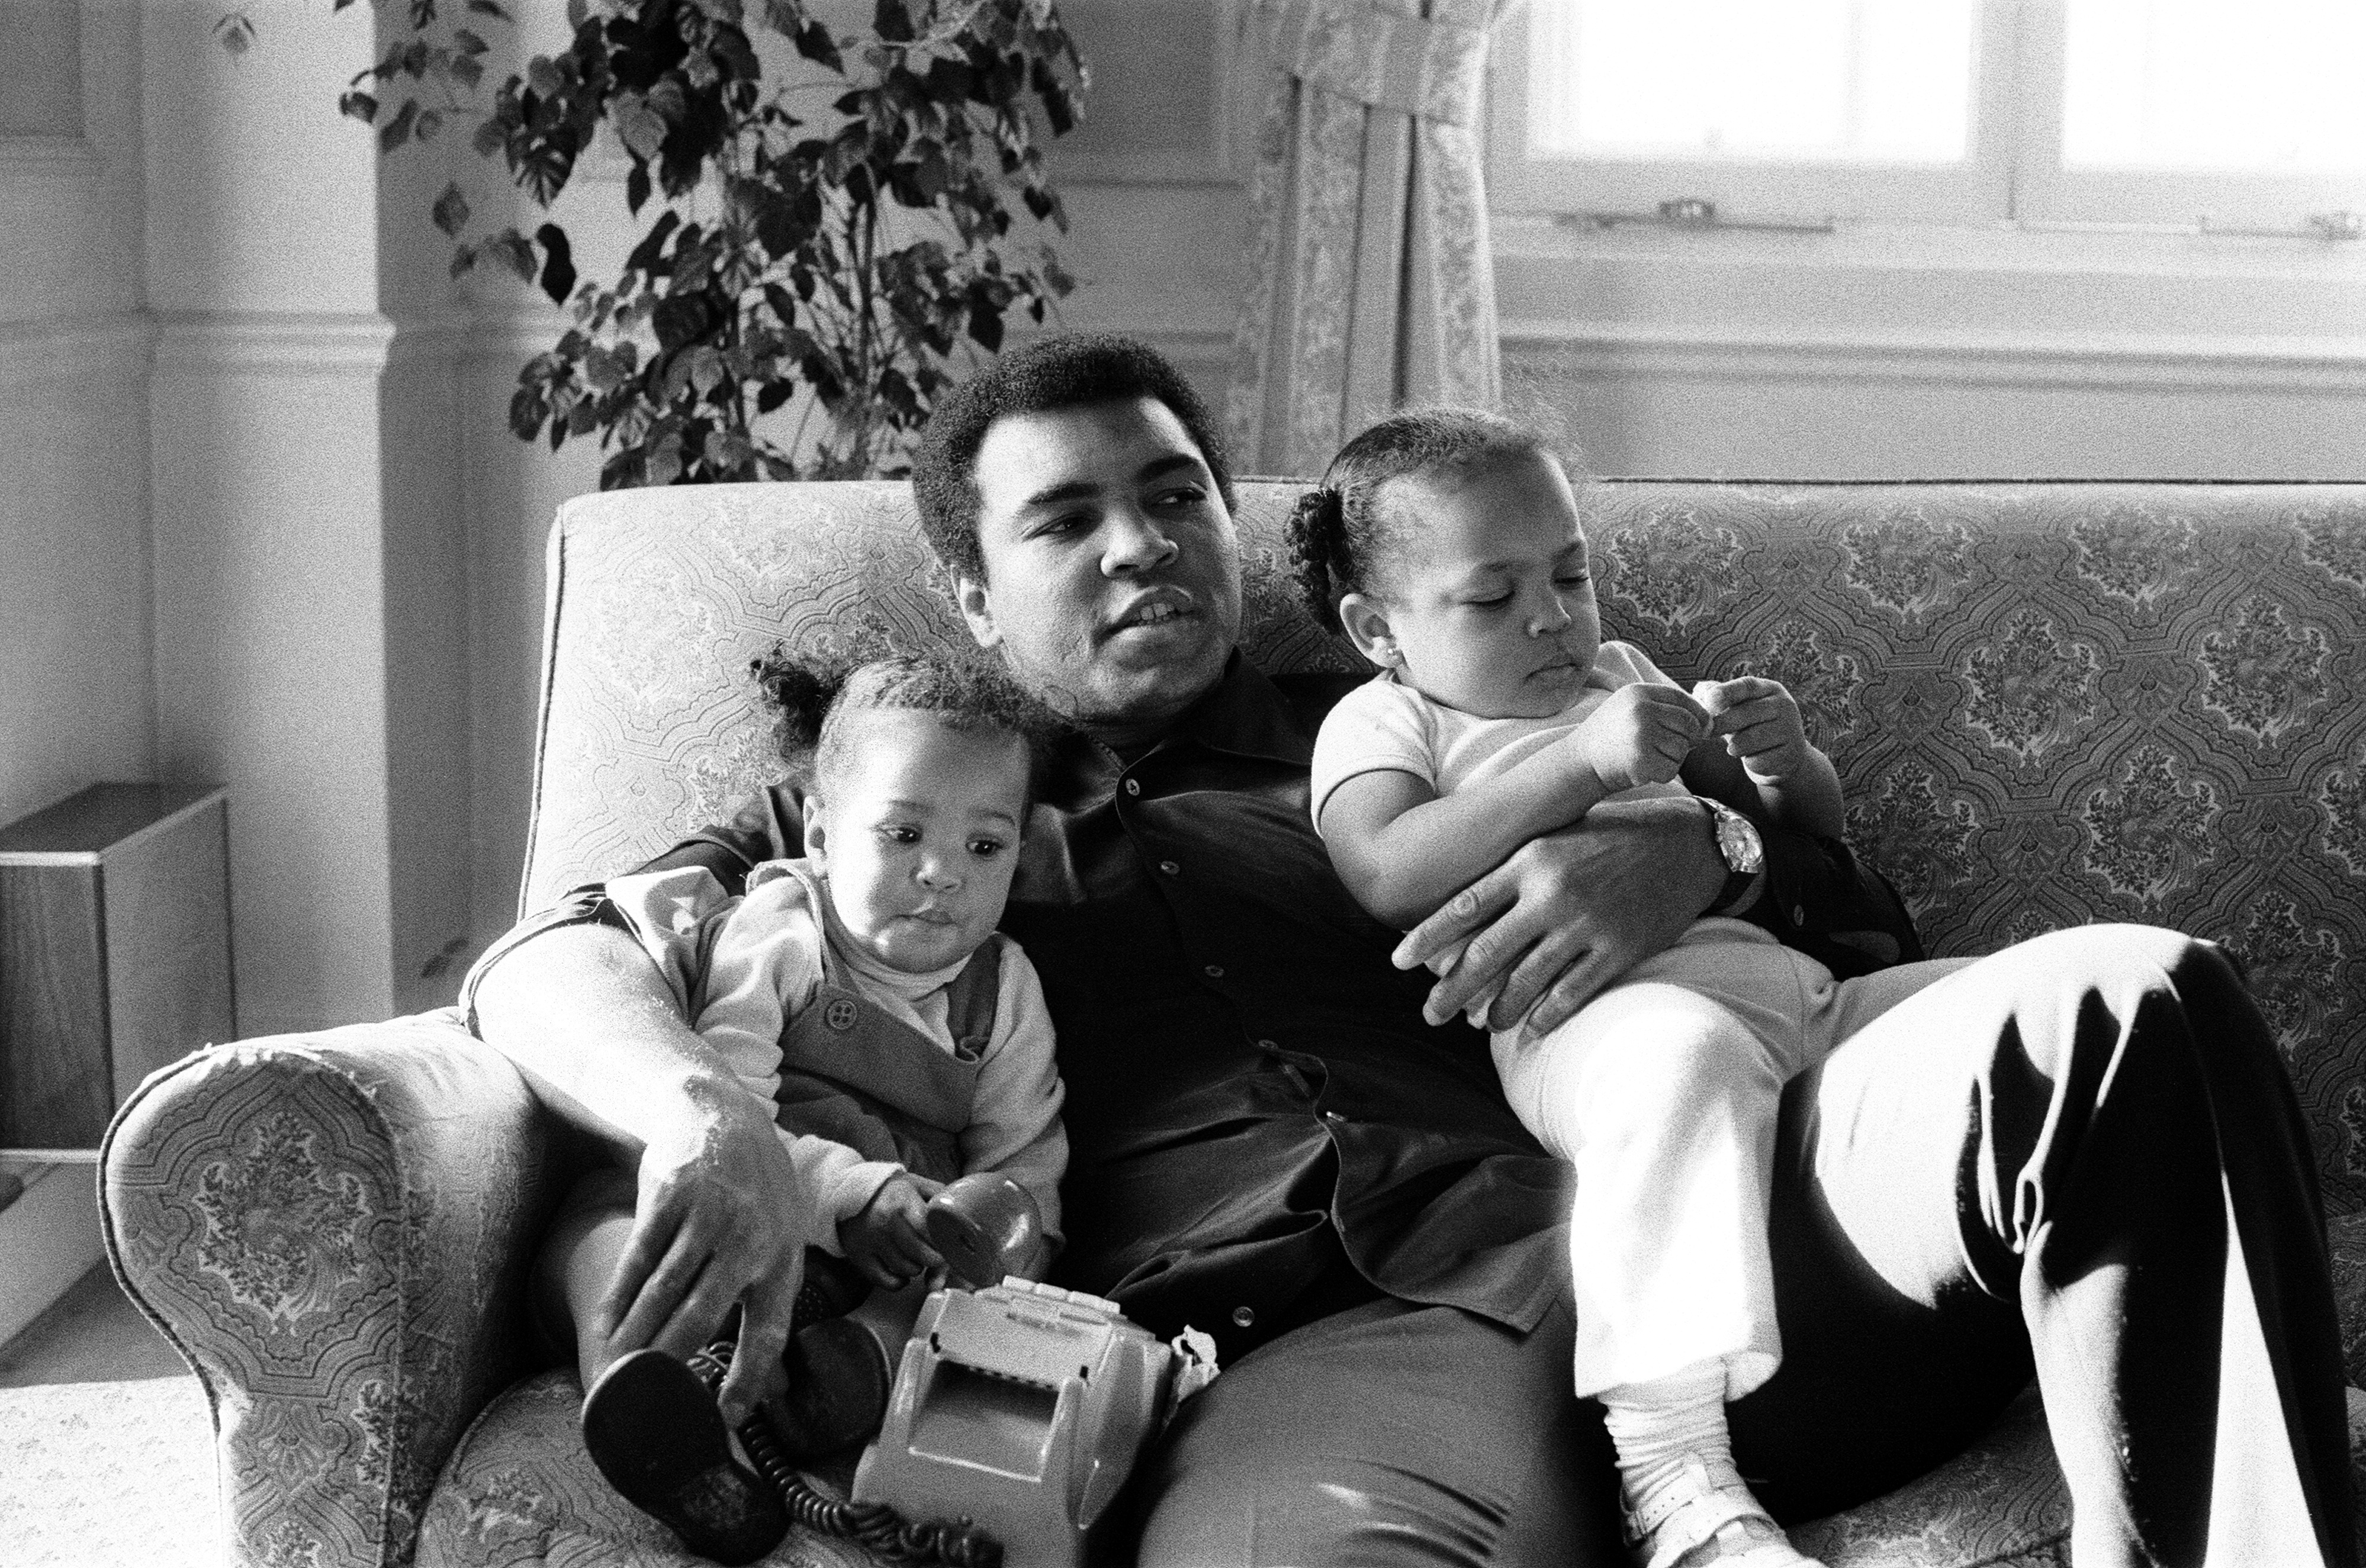 Muhammad Ali cuddles his daughters Laila (left) and Hana at a hotel in London on Dec. 19, 1978. File photo by Action Images/MSI via Reuters